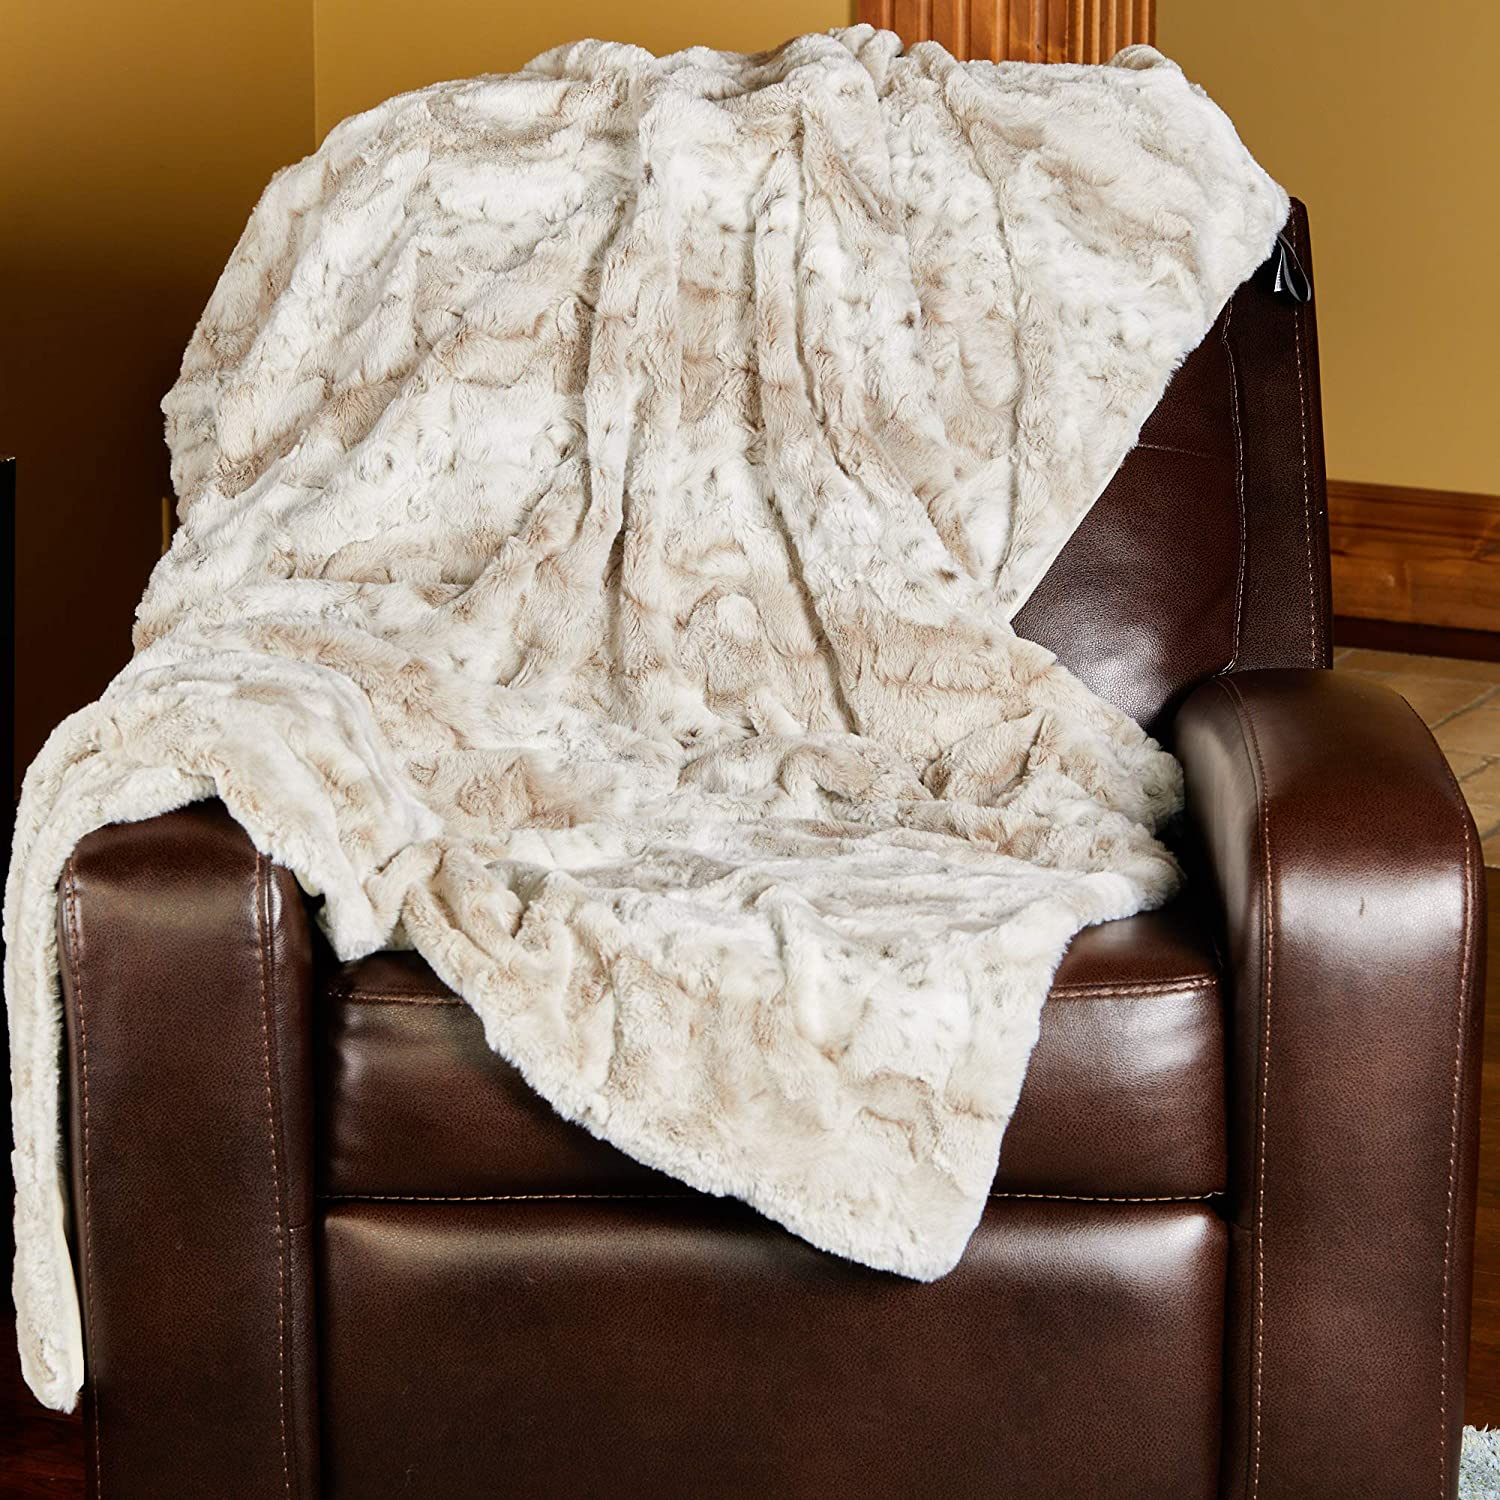 Amazon Com 1i4 Group Outrageously Soft Throw Blanket Ultra Plush Minky Faux Fur Blanket 50 X 70 Inches Tan Home Kitchen